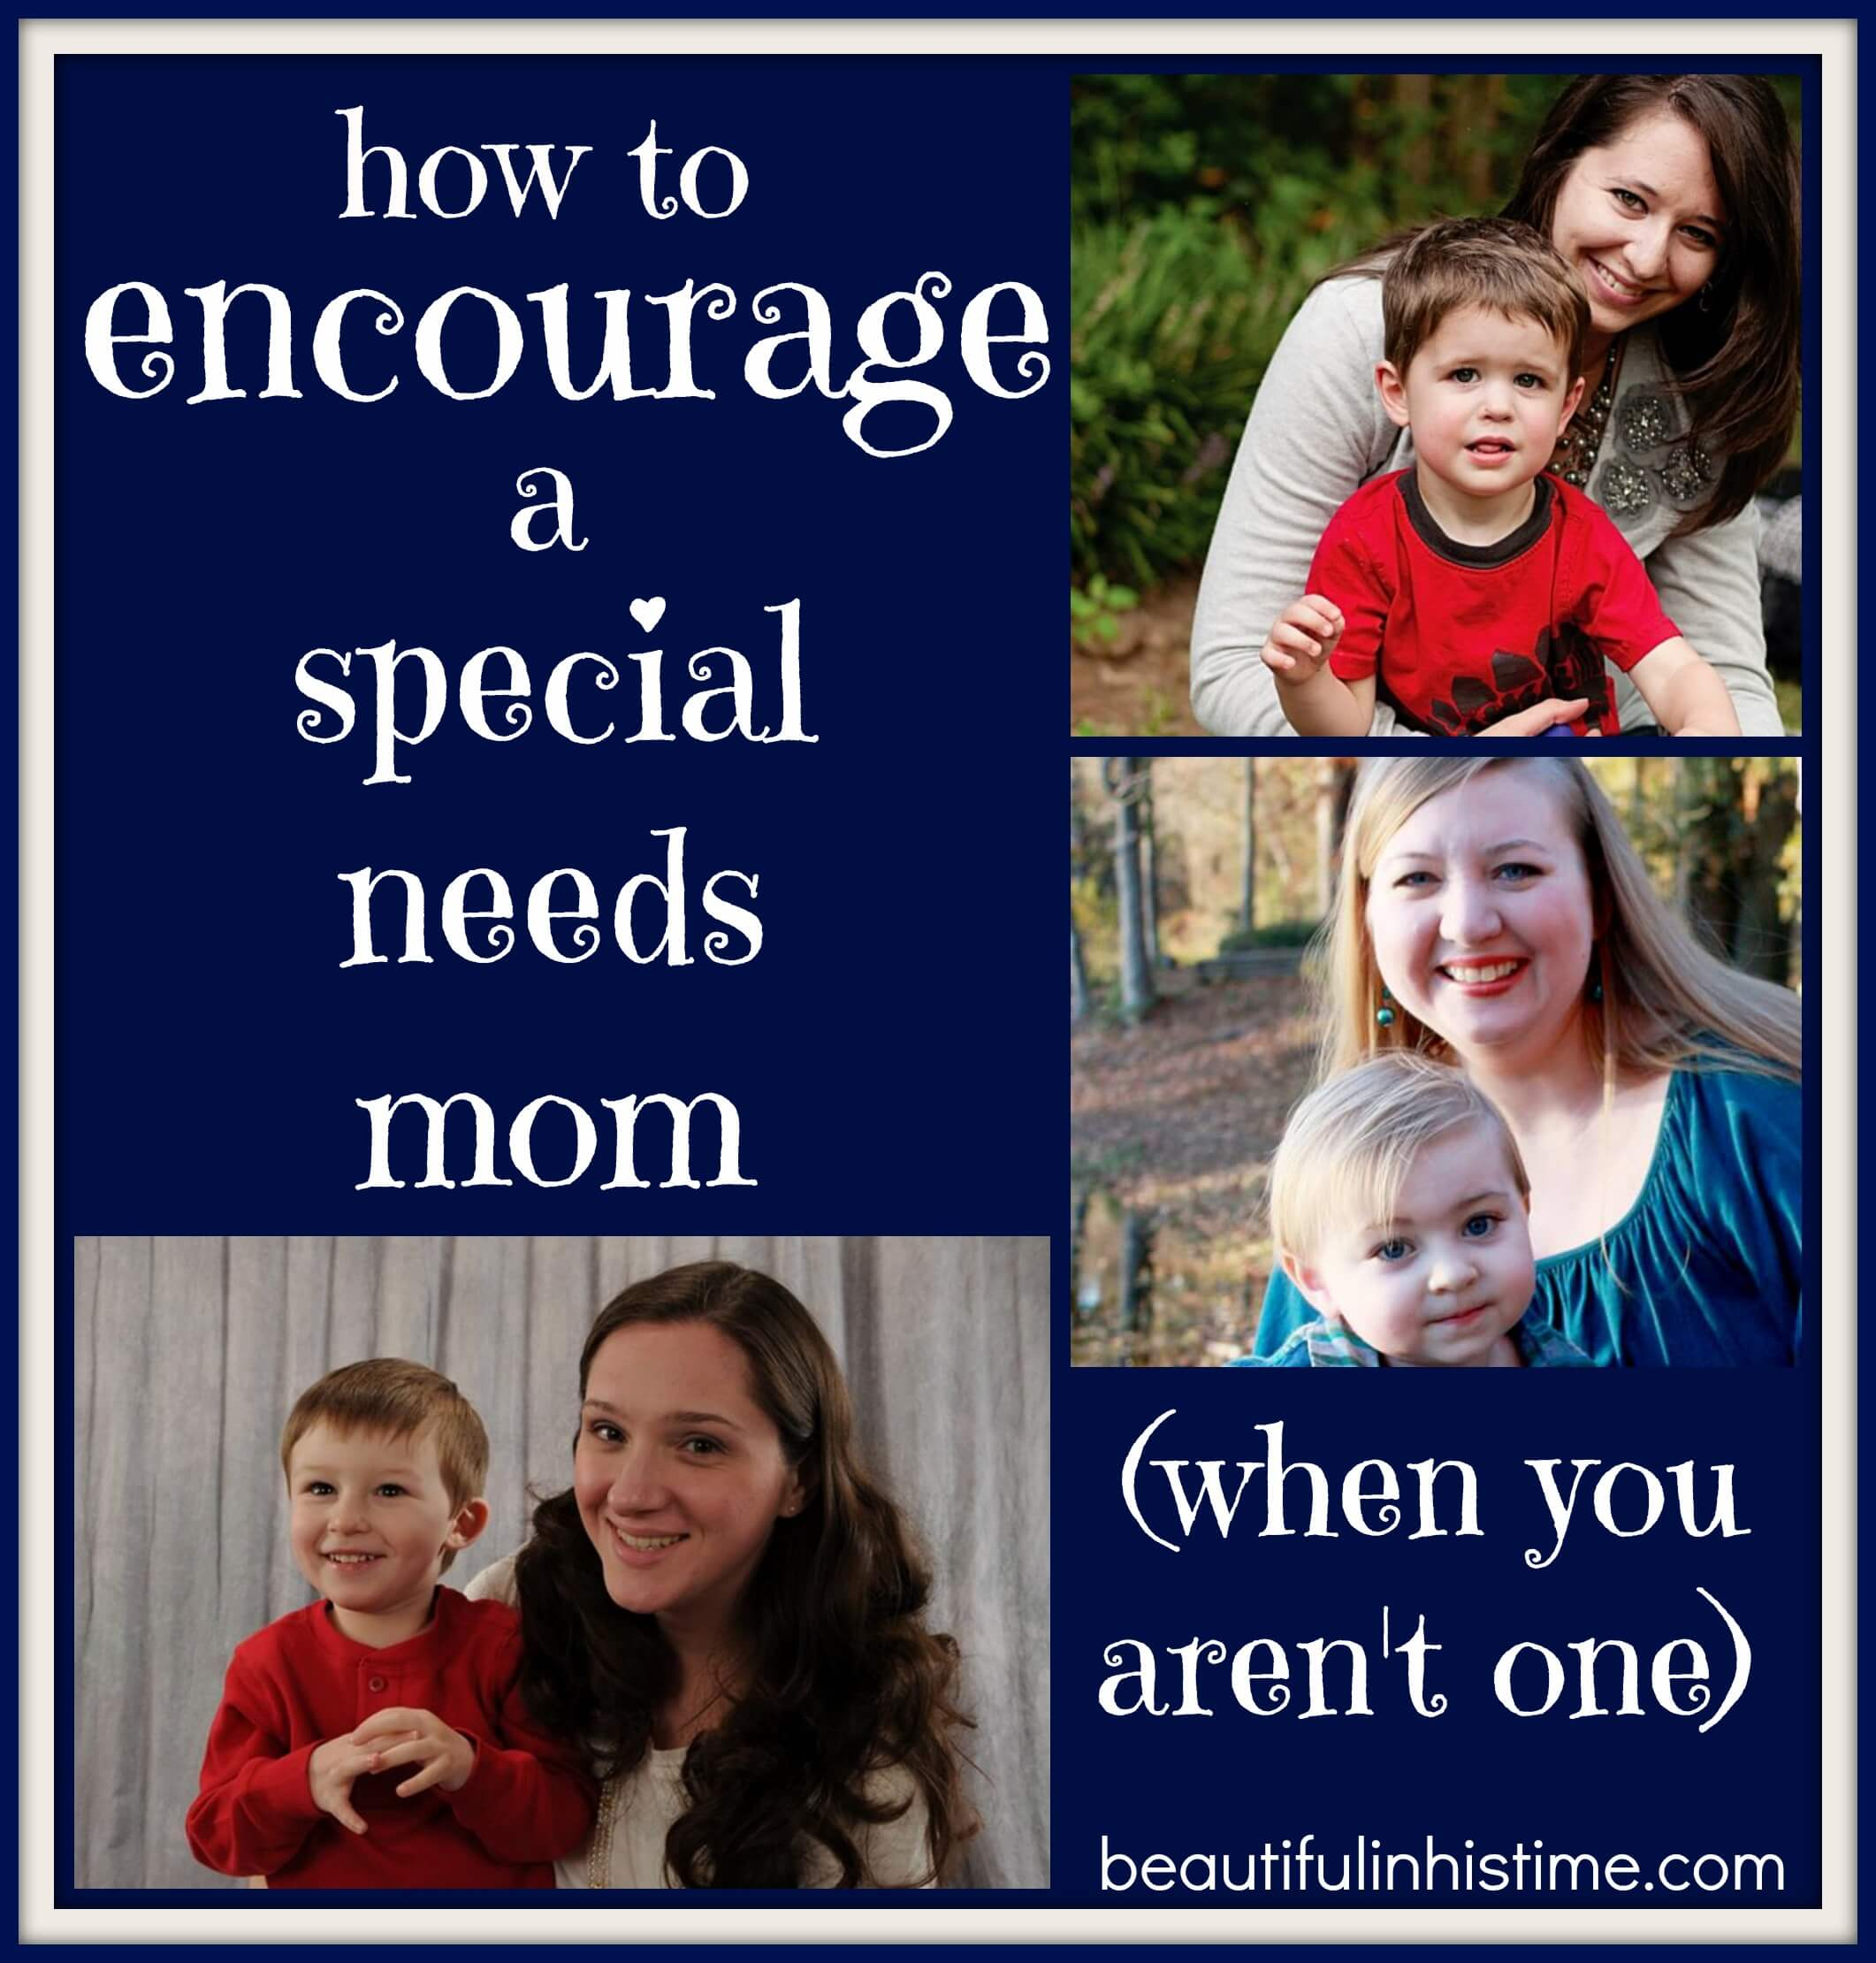 how to encourage a special needs mom